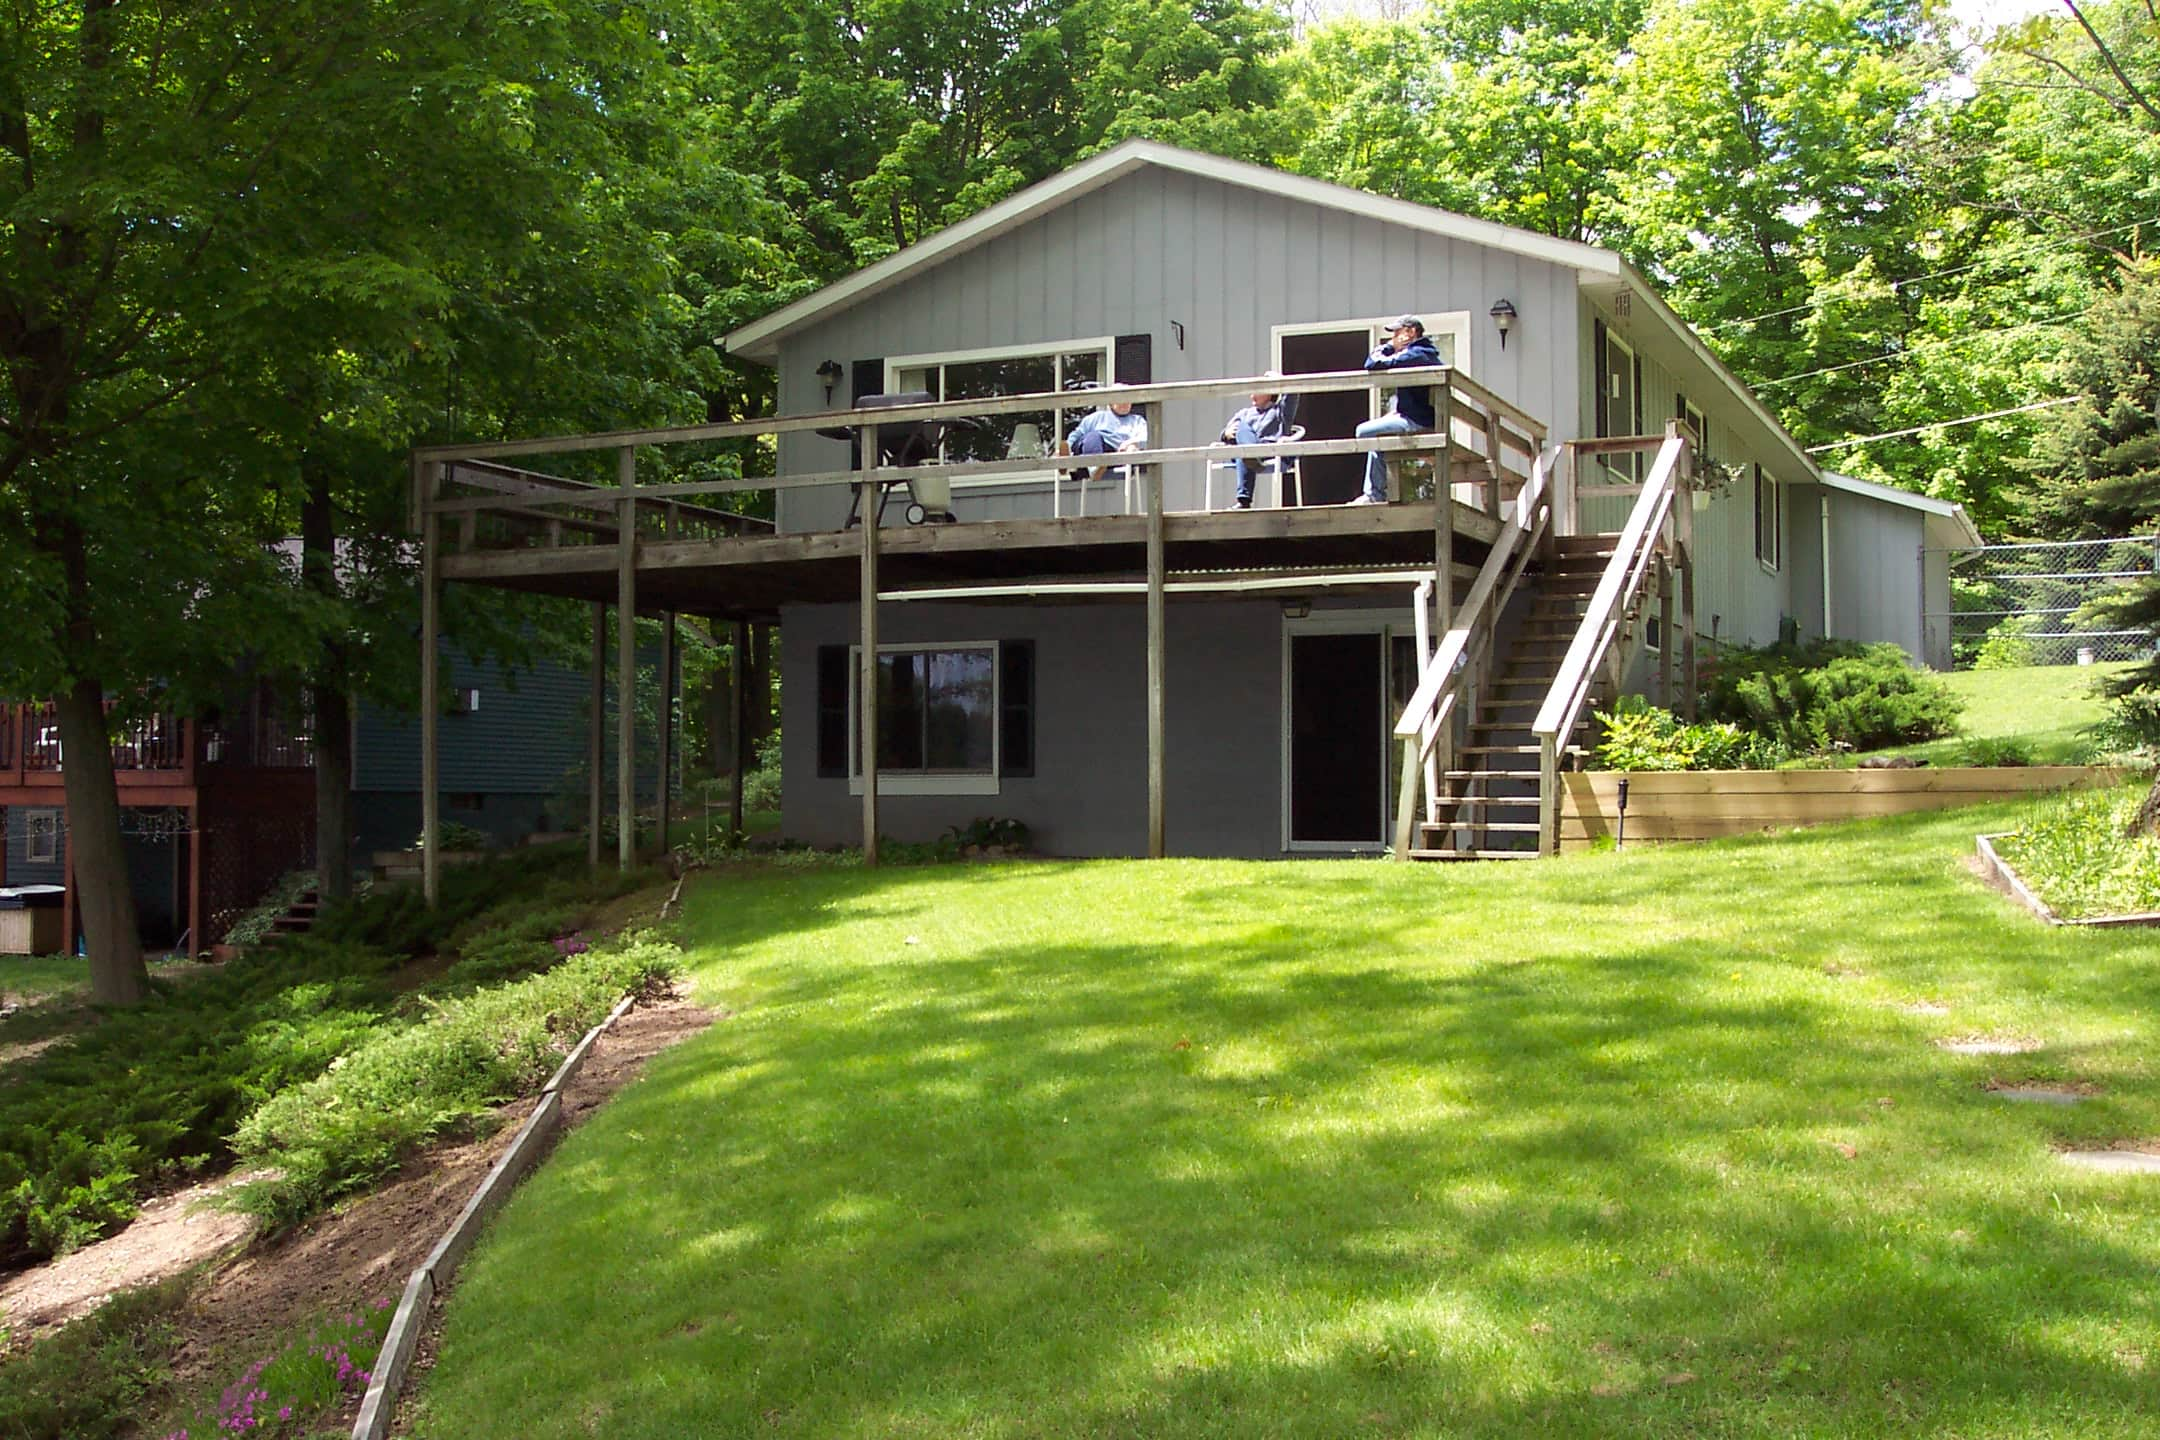 cabins rentals resort one on crest bedroom lakethe houghton lake cabin the